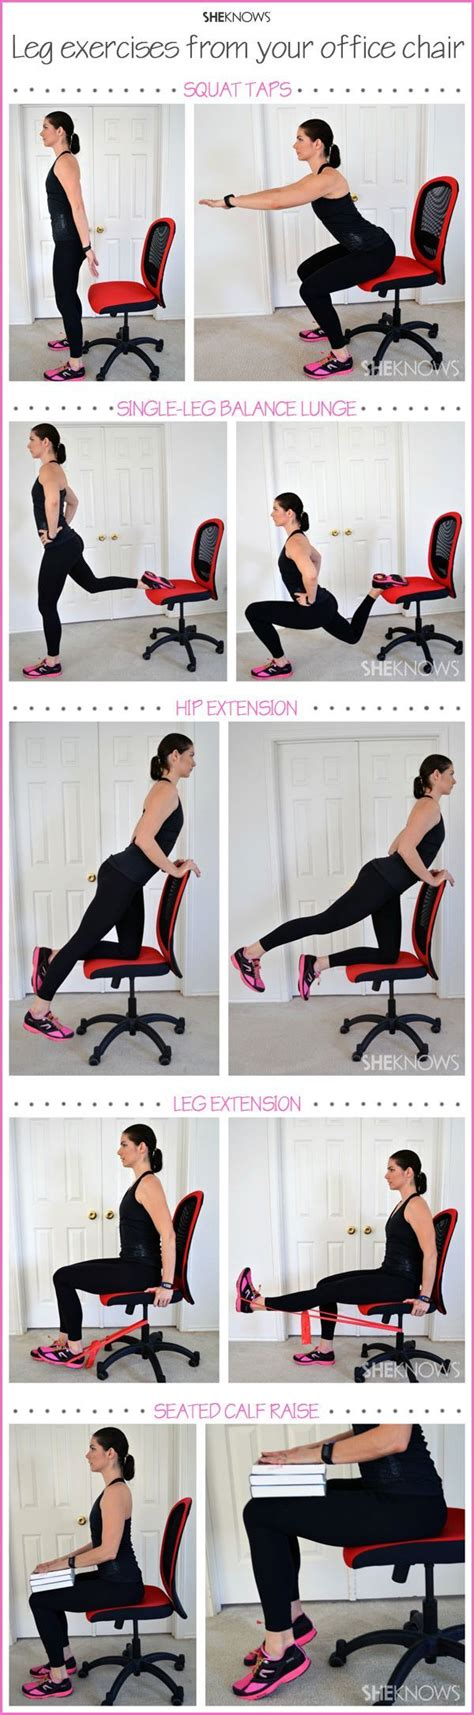 workout at your desk 1000 ideas about office workouts on pinterest abdominal